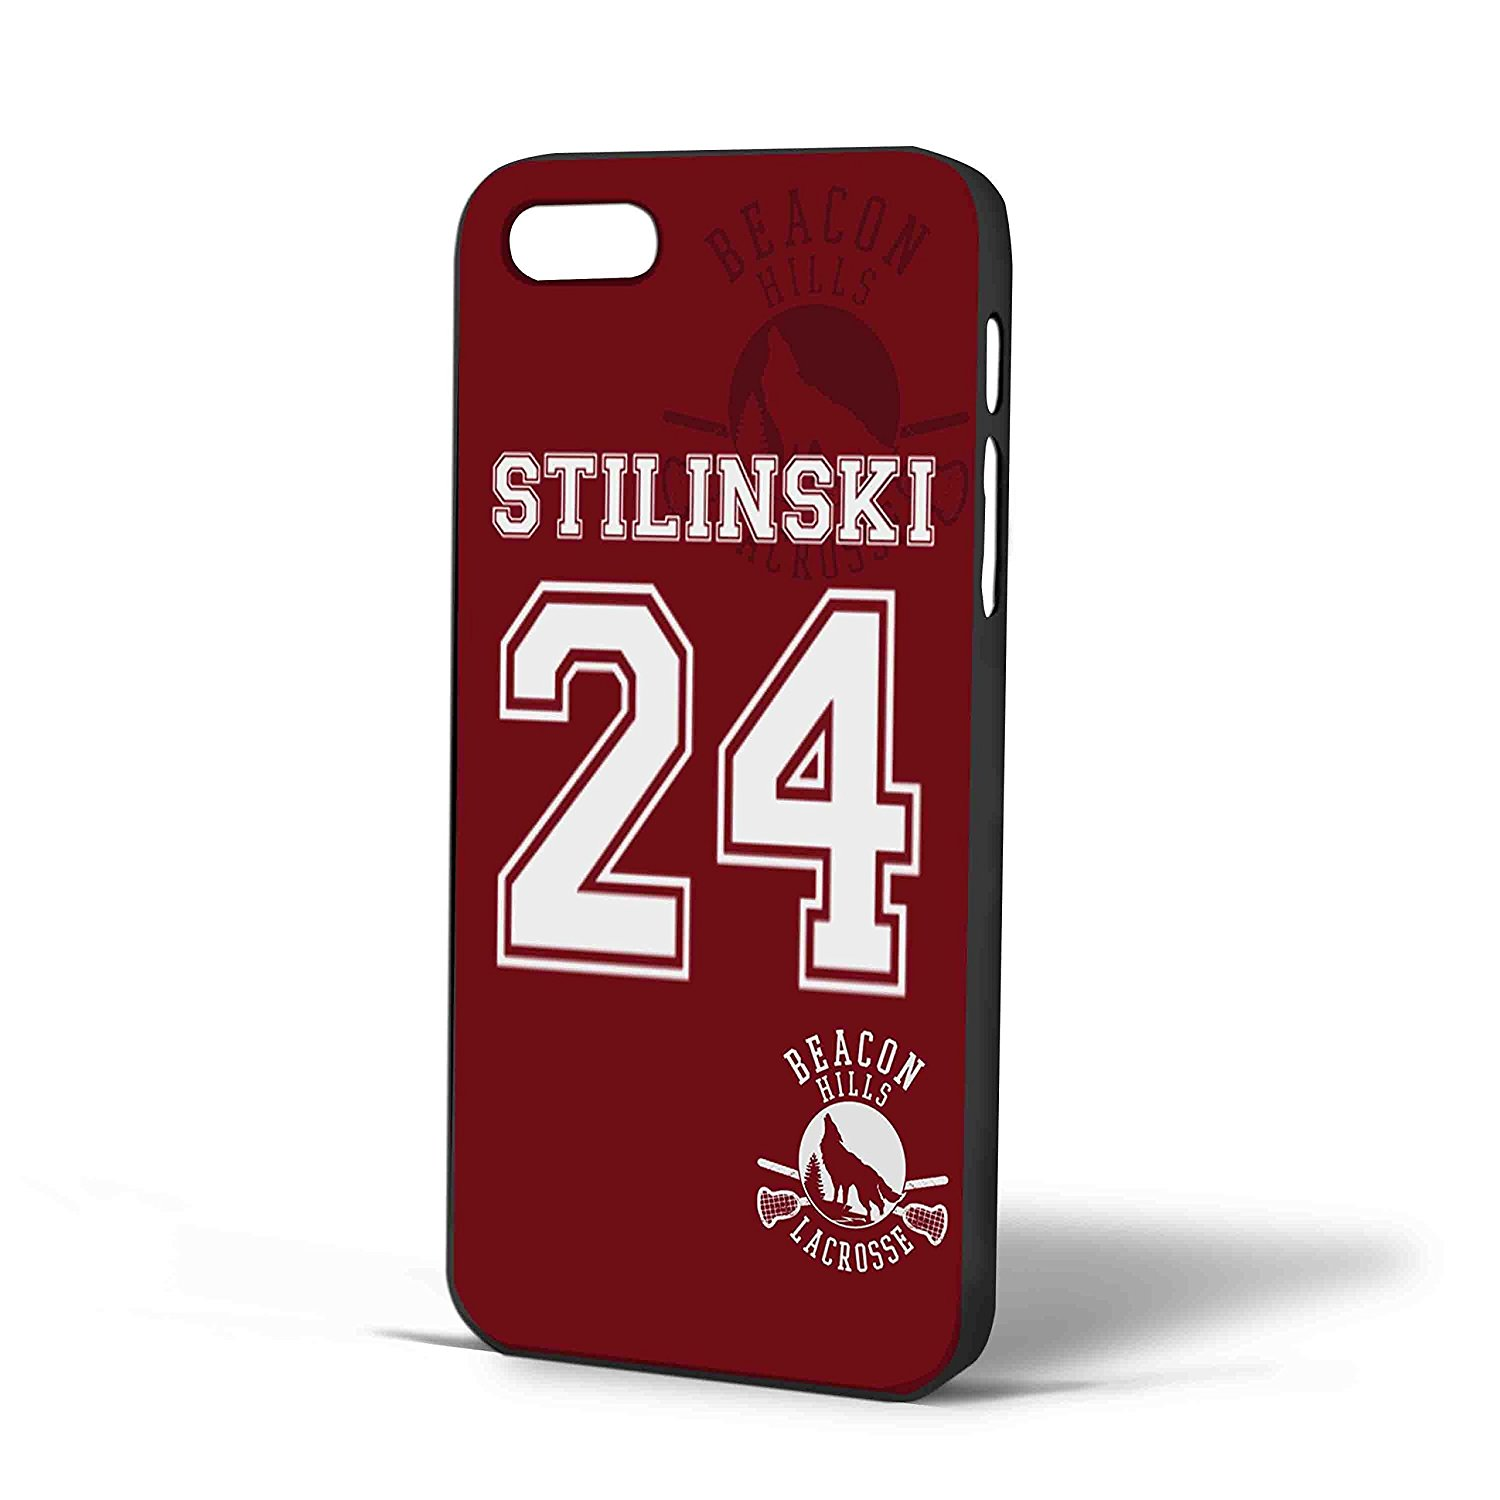 Ganma Teen Wolf Stilinski lacrosse jersey New Design -2 FDL Case For iPhone Case ( Case For iPhone 6 White)